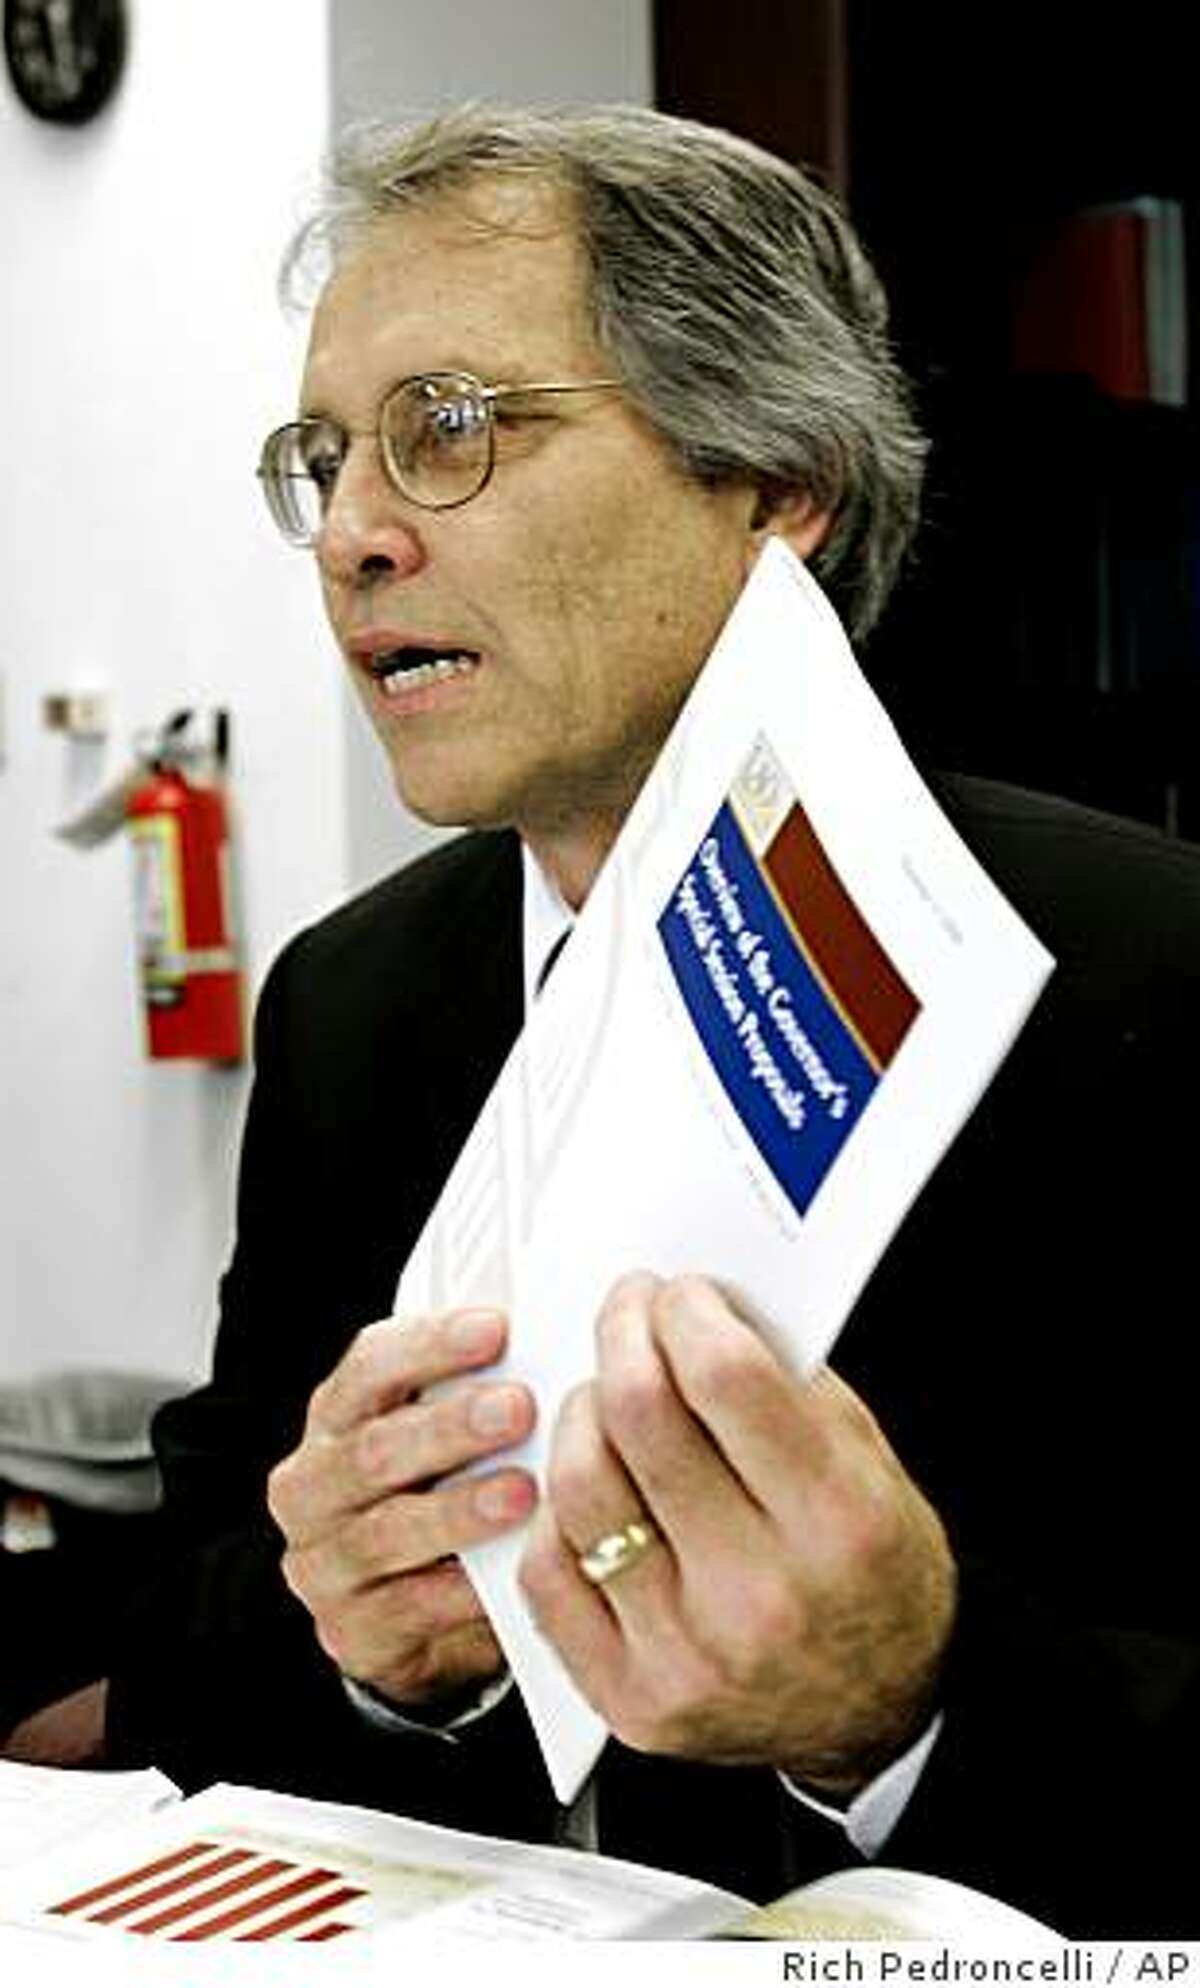 Legislative Analyst Mac Taylor displays a copy of his offices analysis of Gov. Arnold Schwarzeneggers budget proposals during a news conference in Sacramento, Calif., Tuesday, Nov. 11, 2008. Taylor supported the framework of the governor's plan and called it